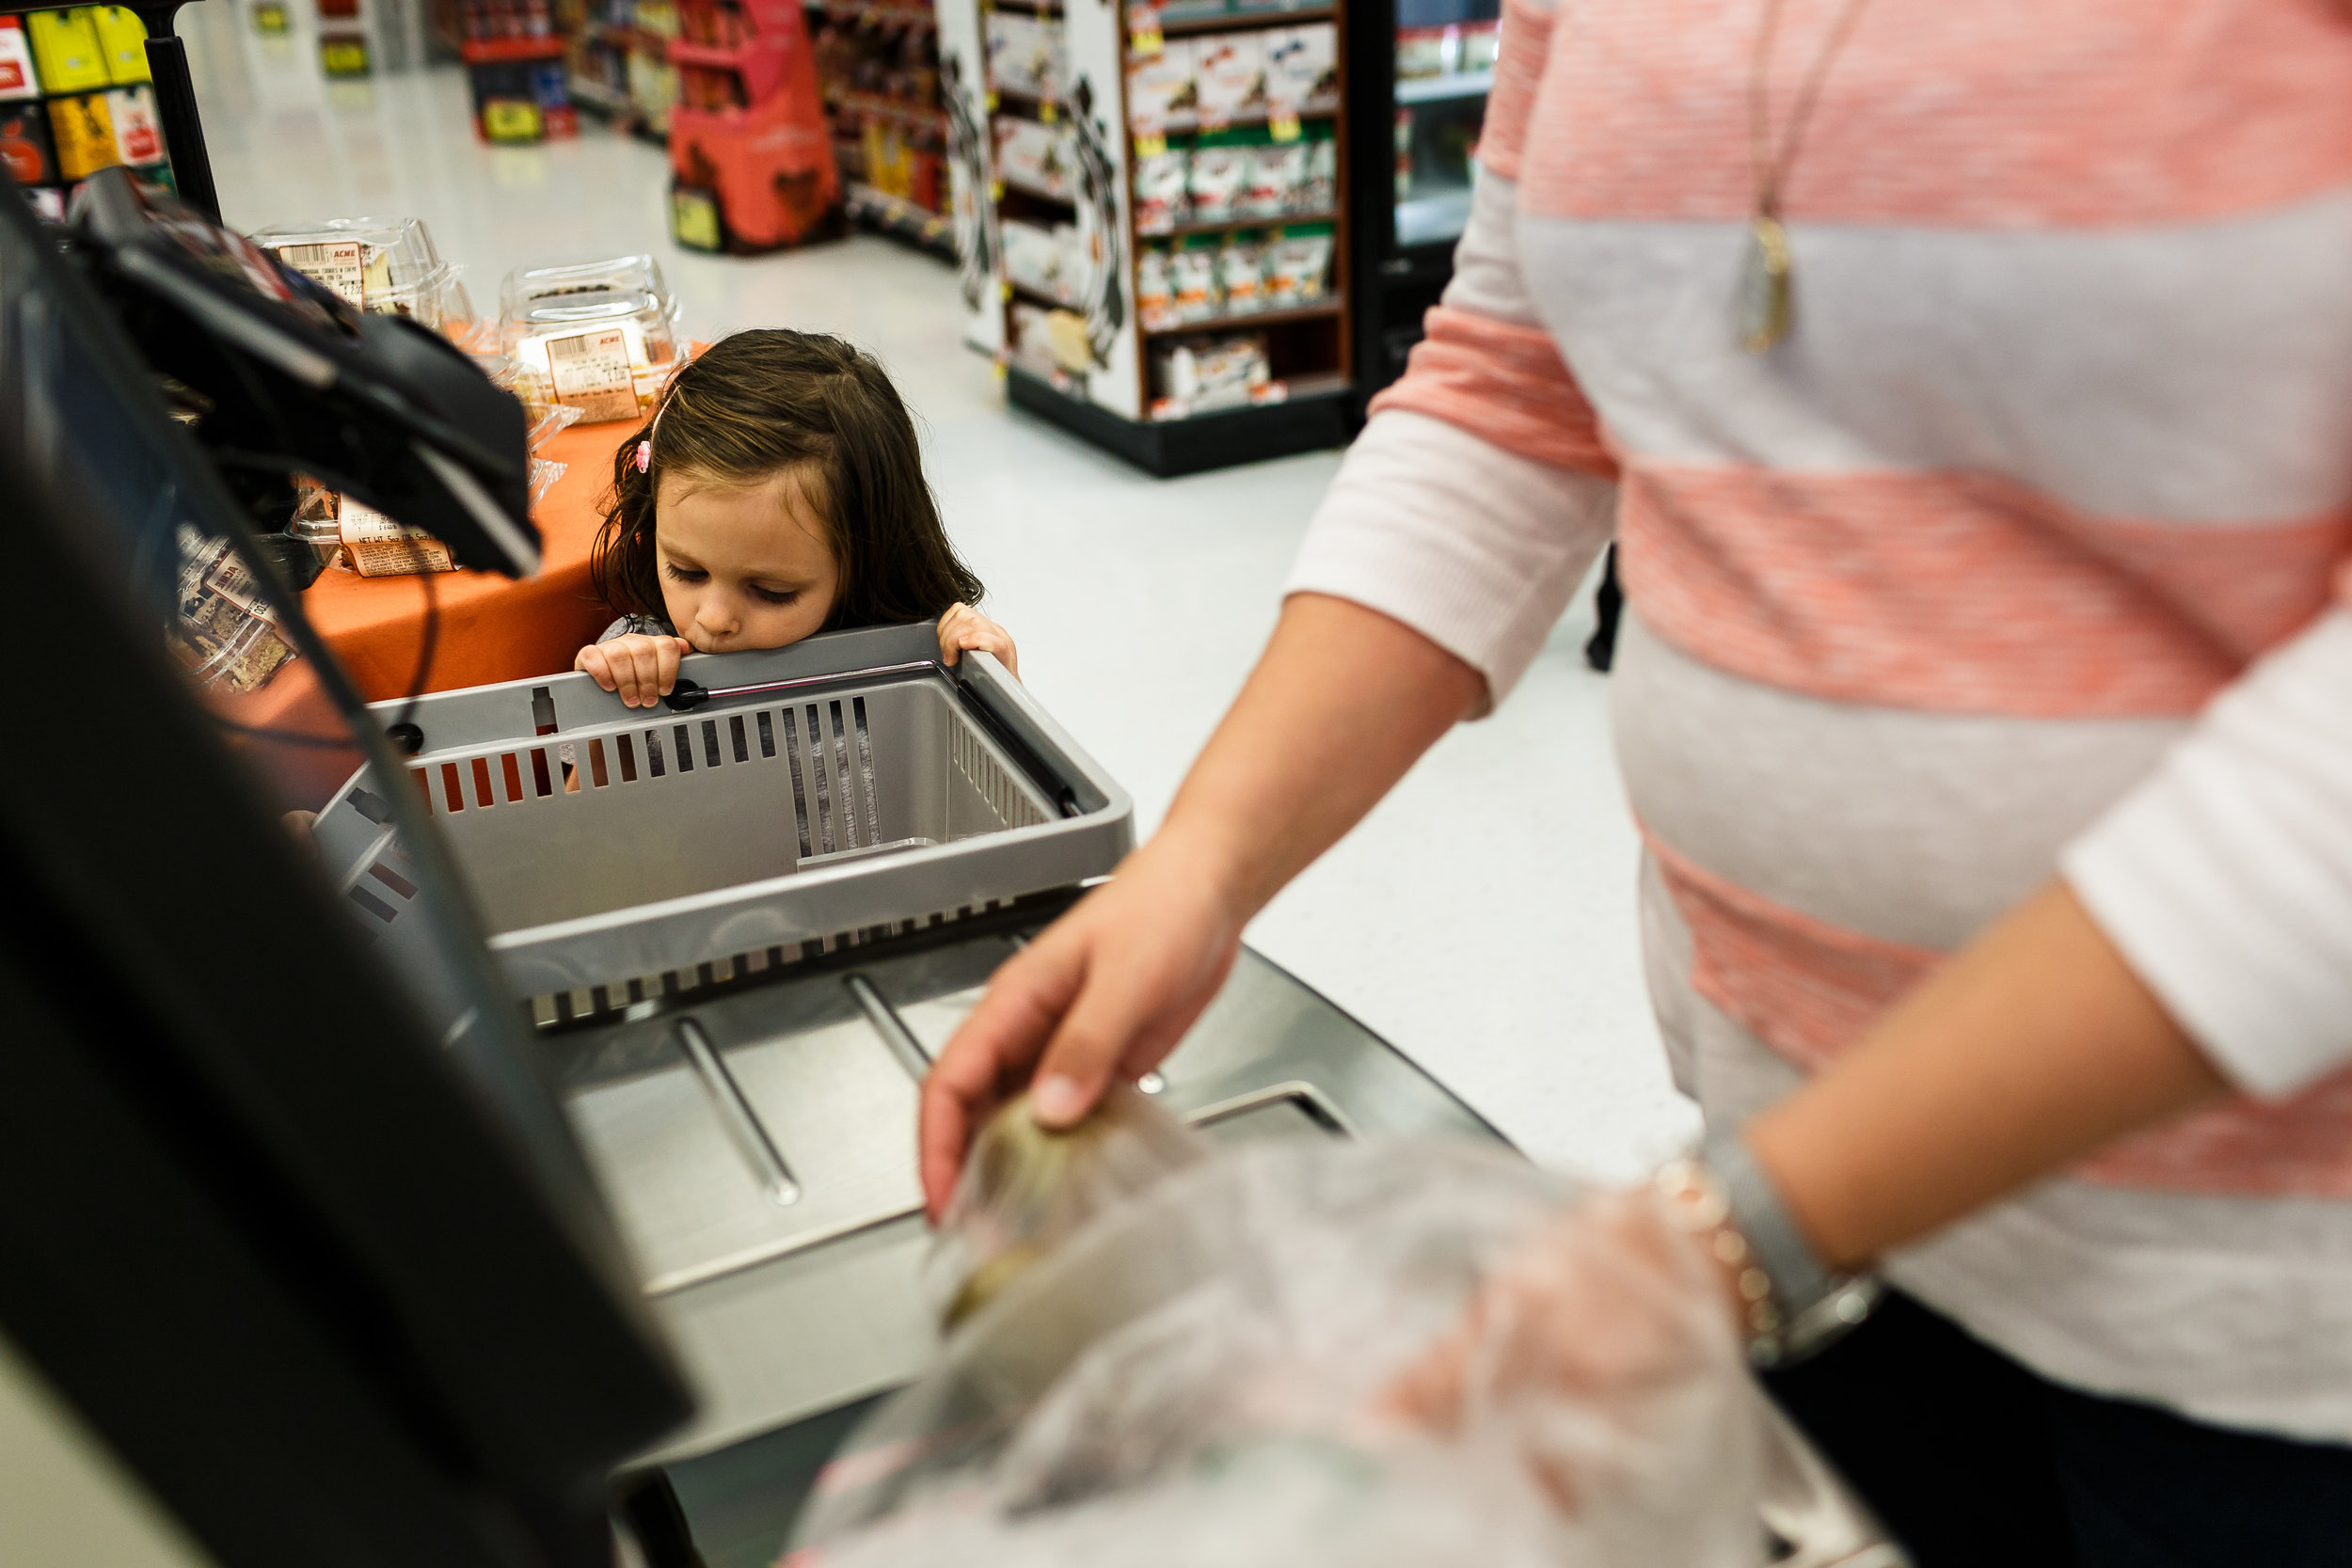 girl being bored at grocery checkout